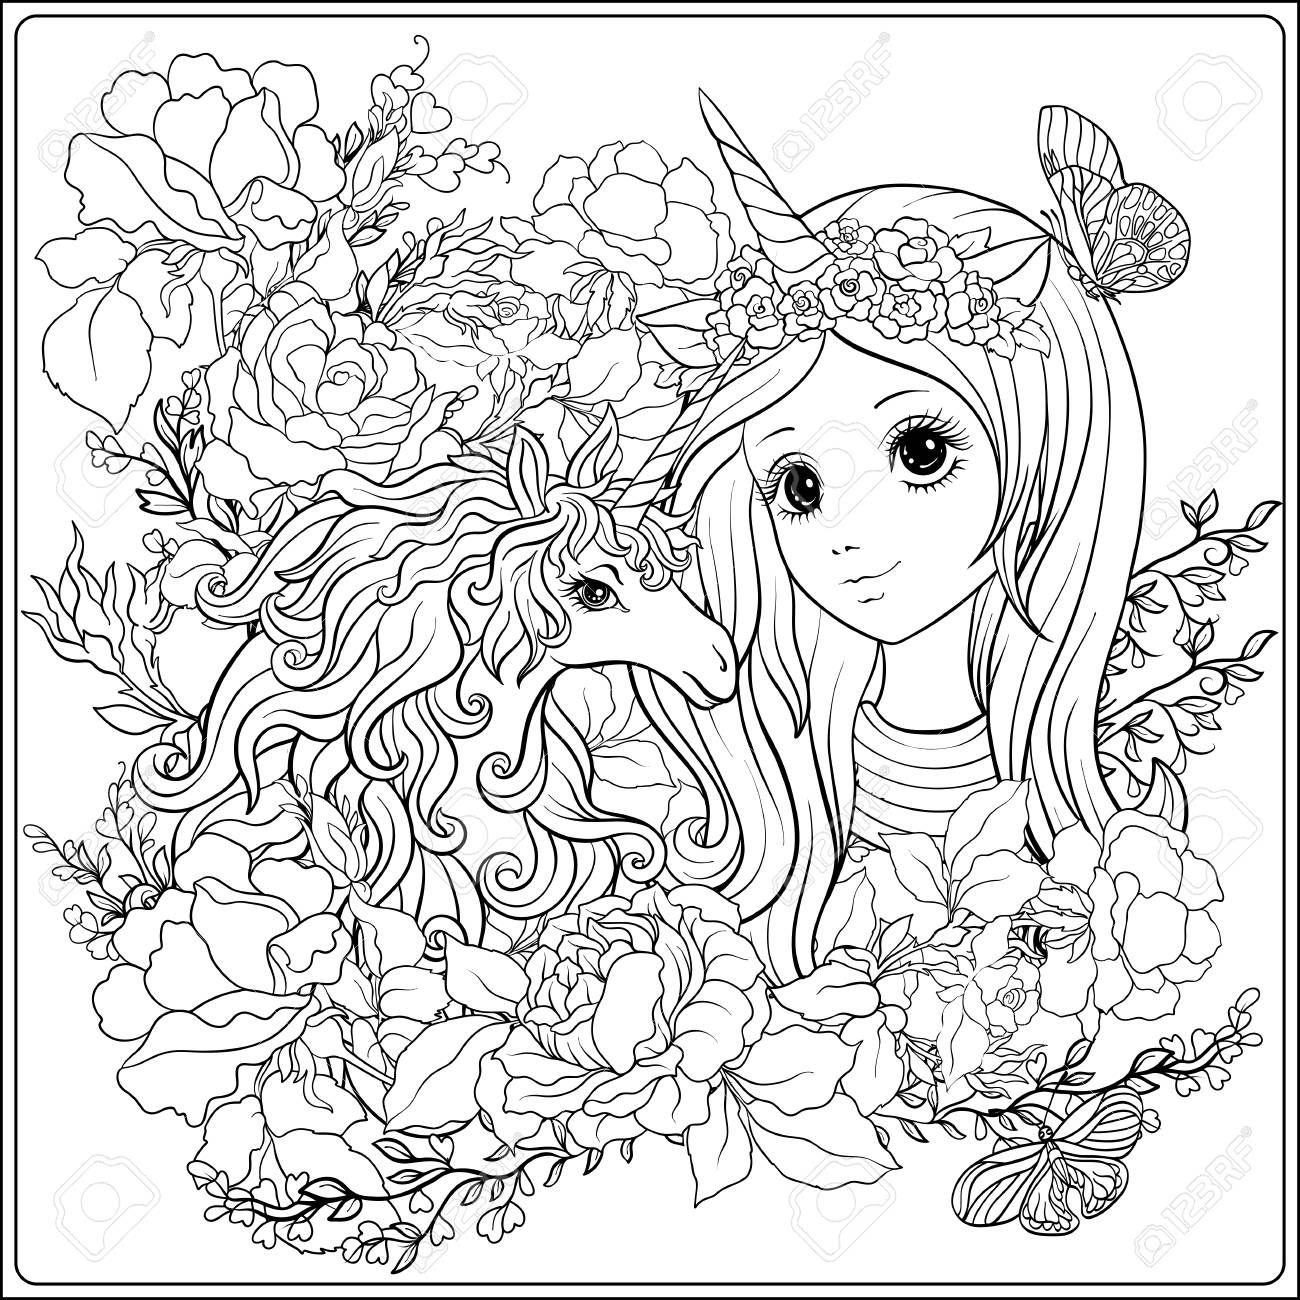 Coloring Unicorn Girl Coloring Pages Unicorn Girl Coloring Unicorn Girl Unicorn Girl Coloring Pic Unicorn Coloring Pages Coloring Pages Bunny Coloring Pages